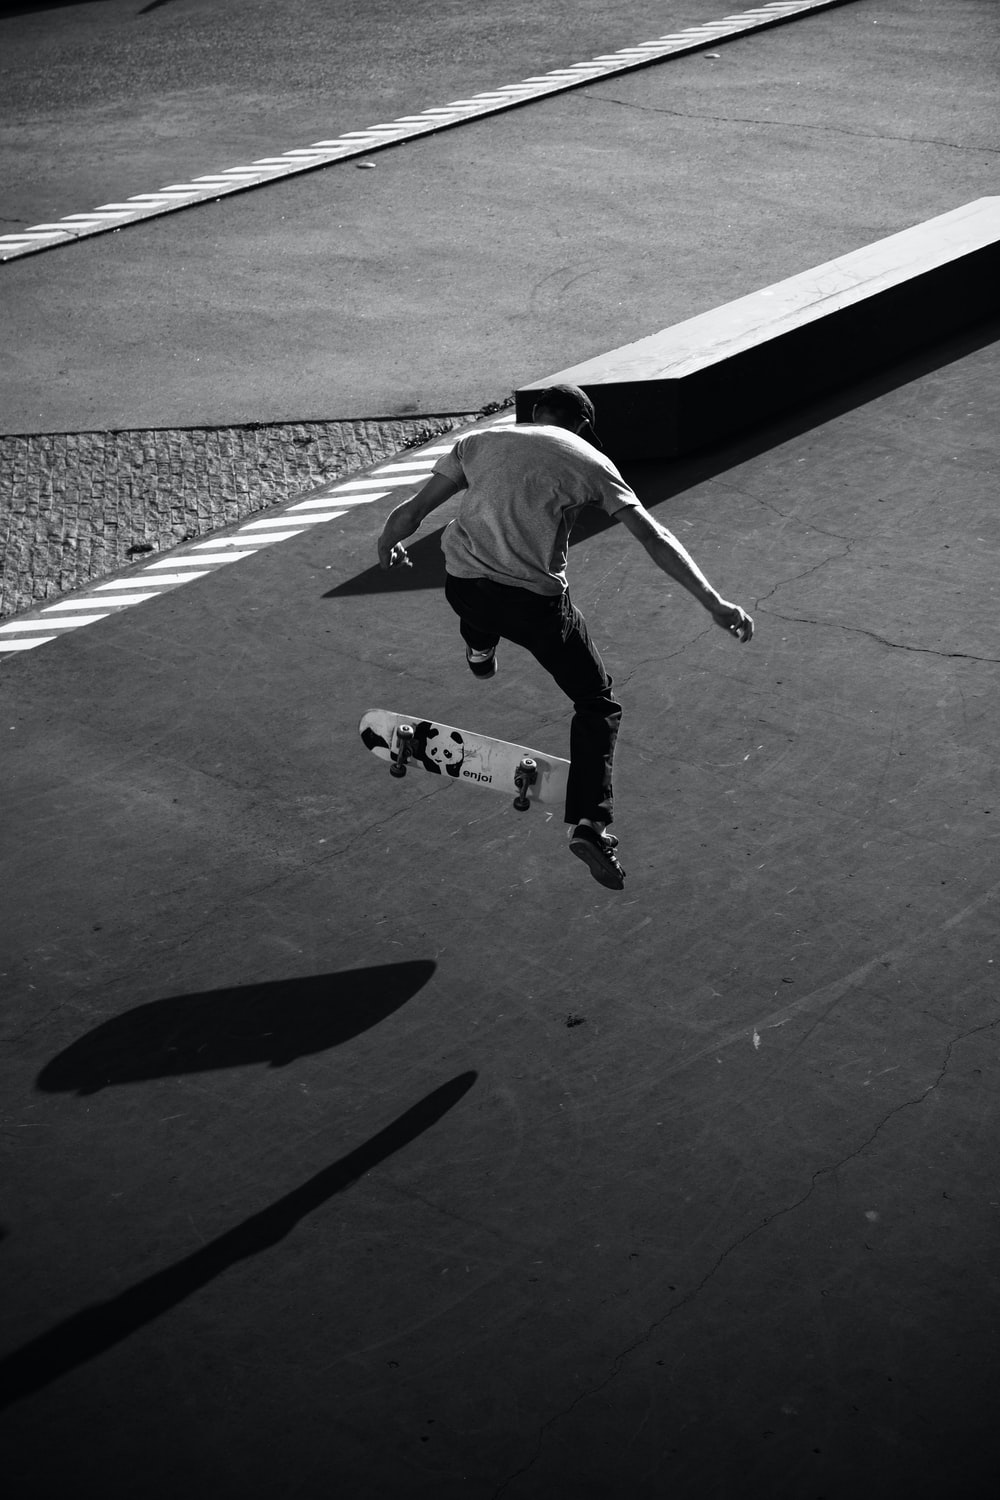 grayscale photography of man skateboarding